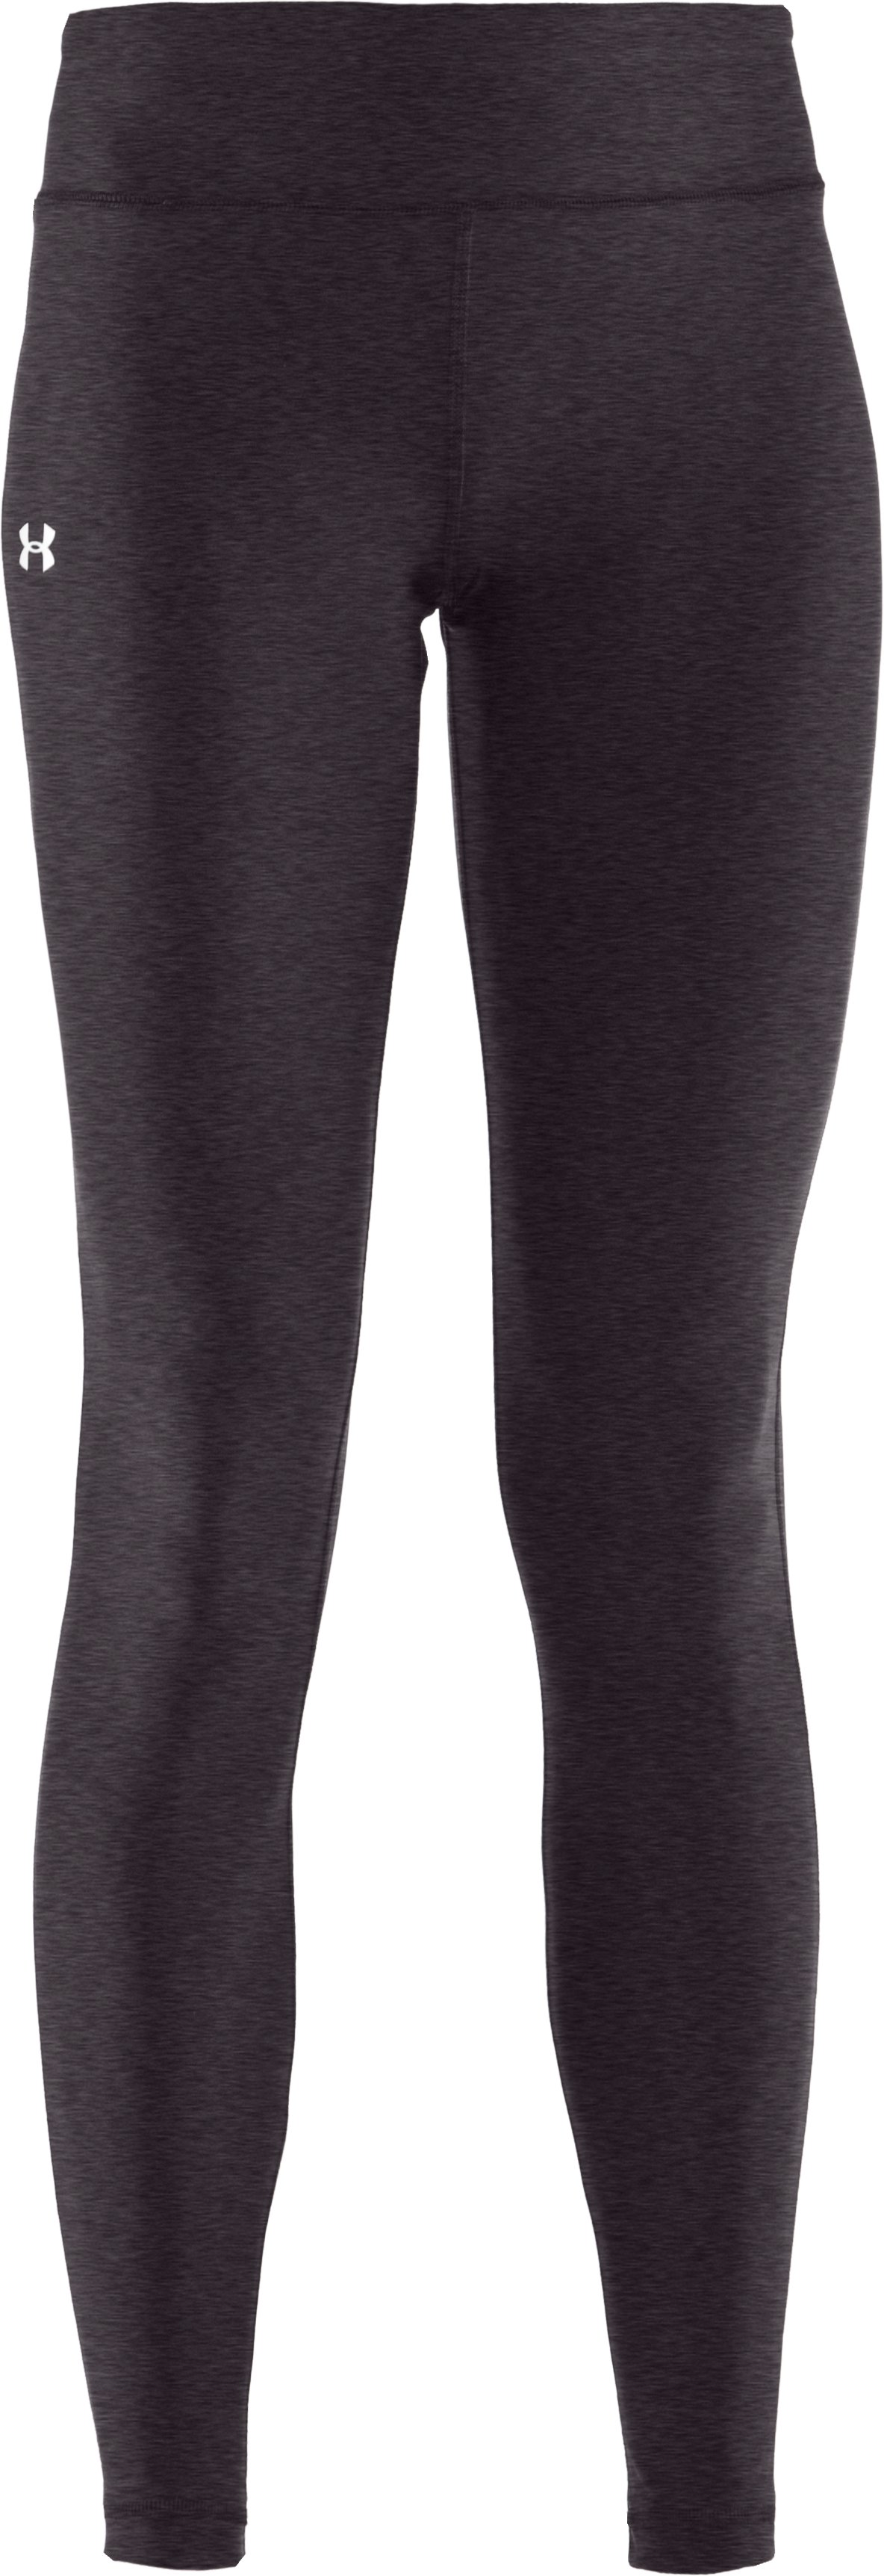 Women's UA Leg Press Tights, Carbon Heather,